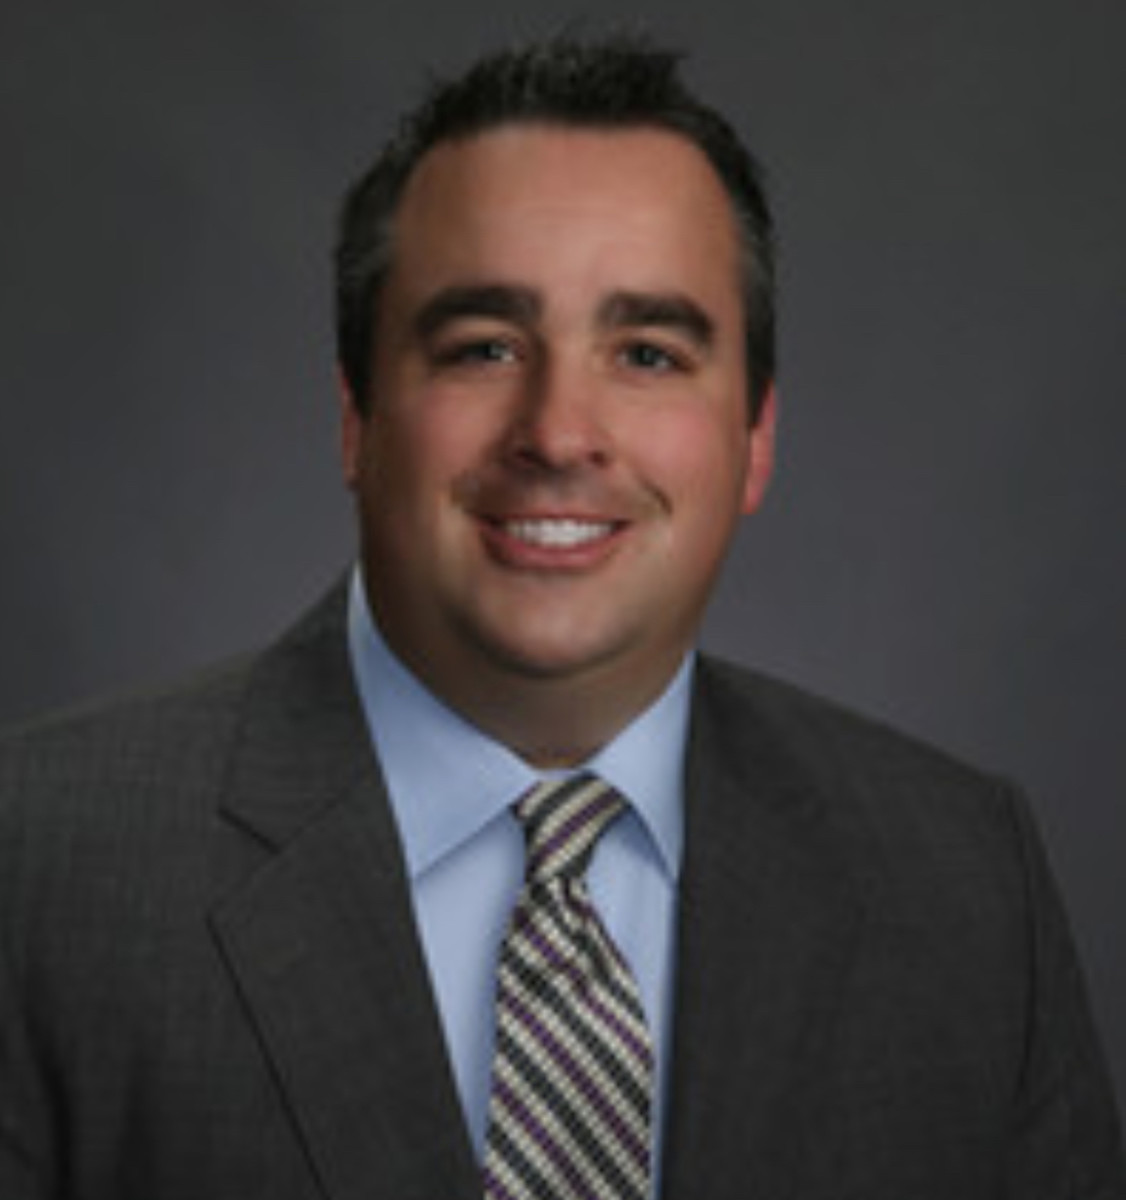 Ryan Gwillim will serve as the company's new CFO.